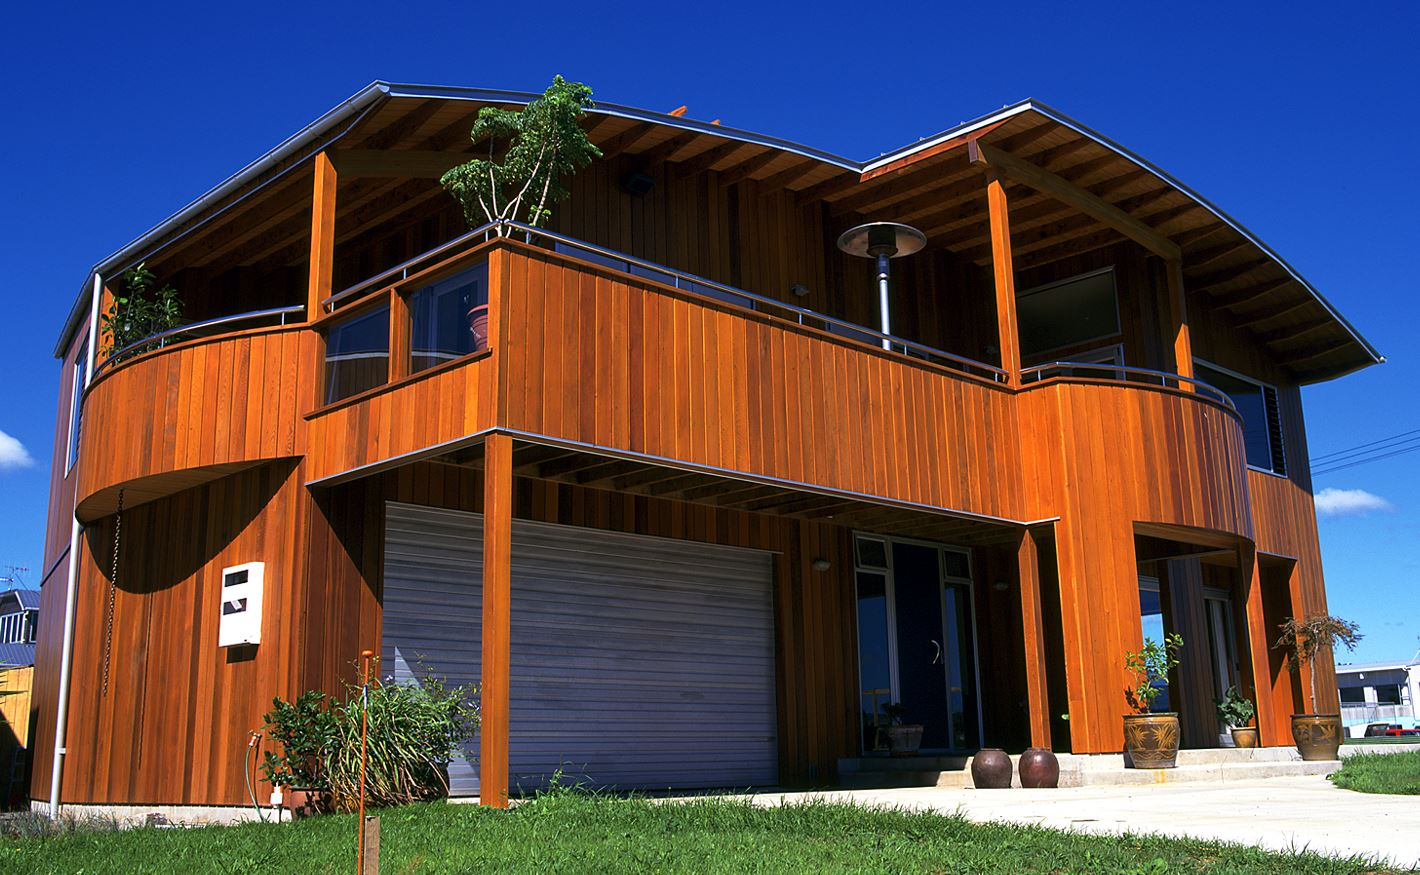 Protect exterior timber cladding with Sikkens wood stain options